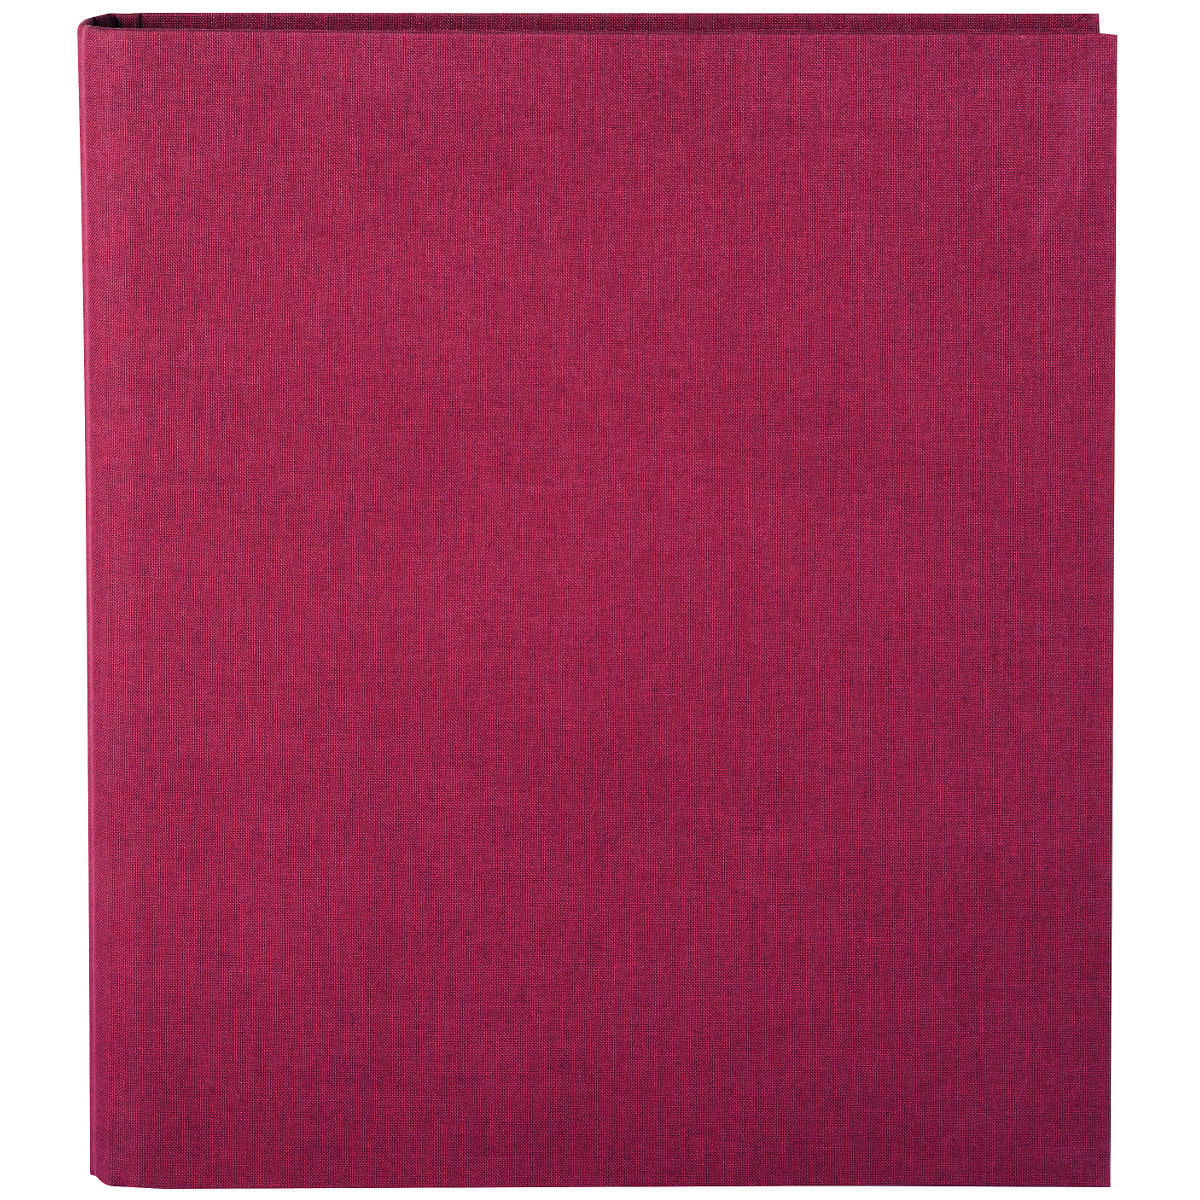 goldbuch Ringbuch Bella Vista fuchsia 4-Ring 1